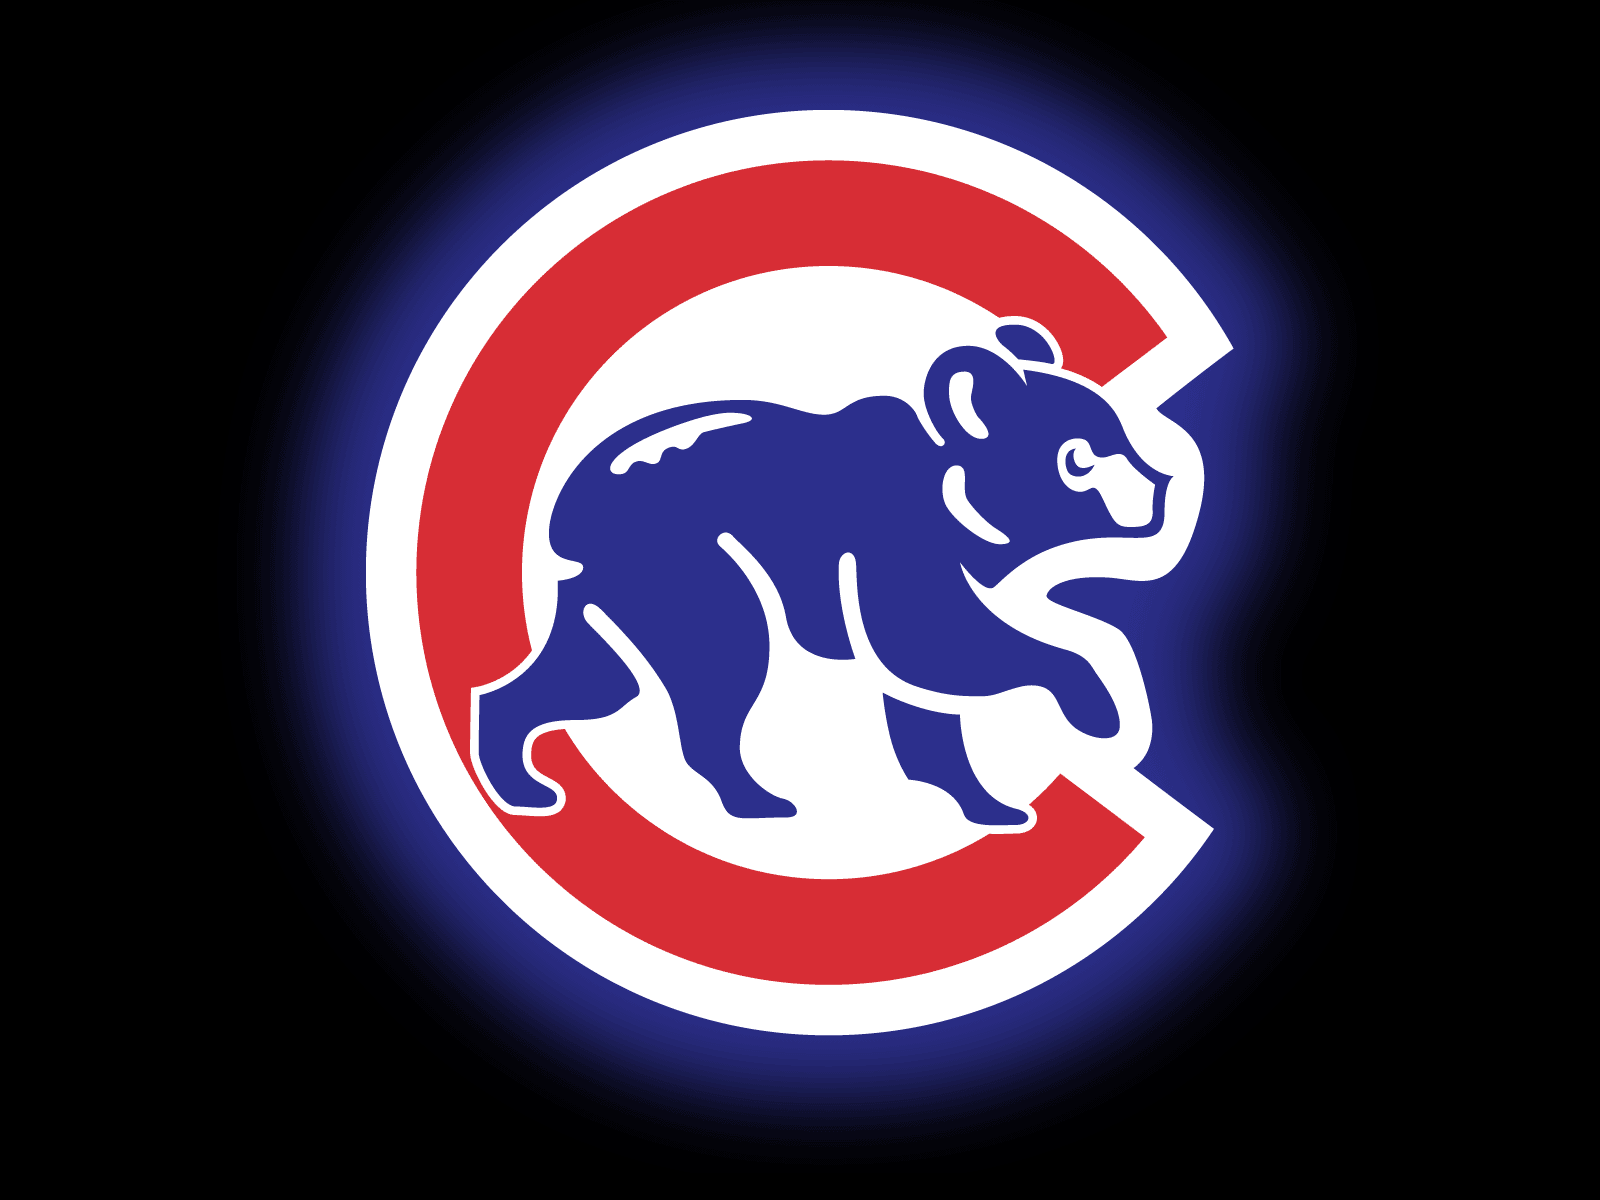 CHICAGO CUBS mlb baseball 1 wallpaper 1600x1200 232505 1600x1200